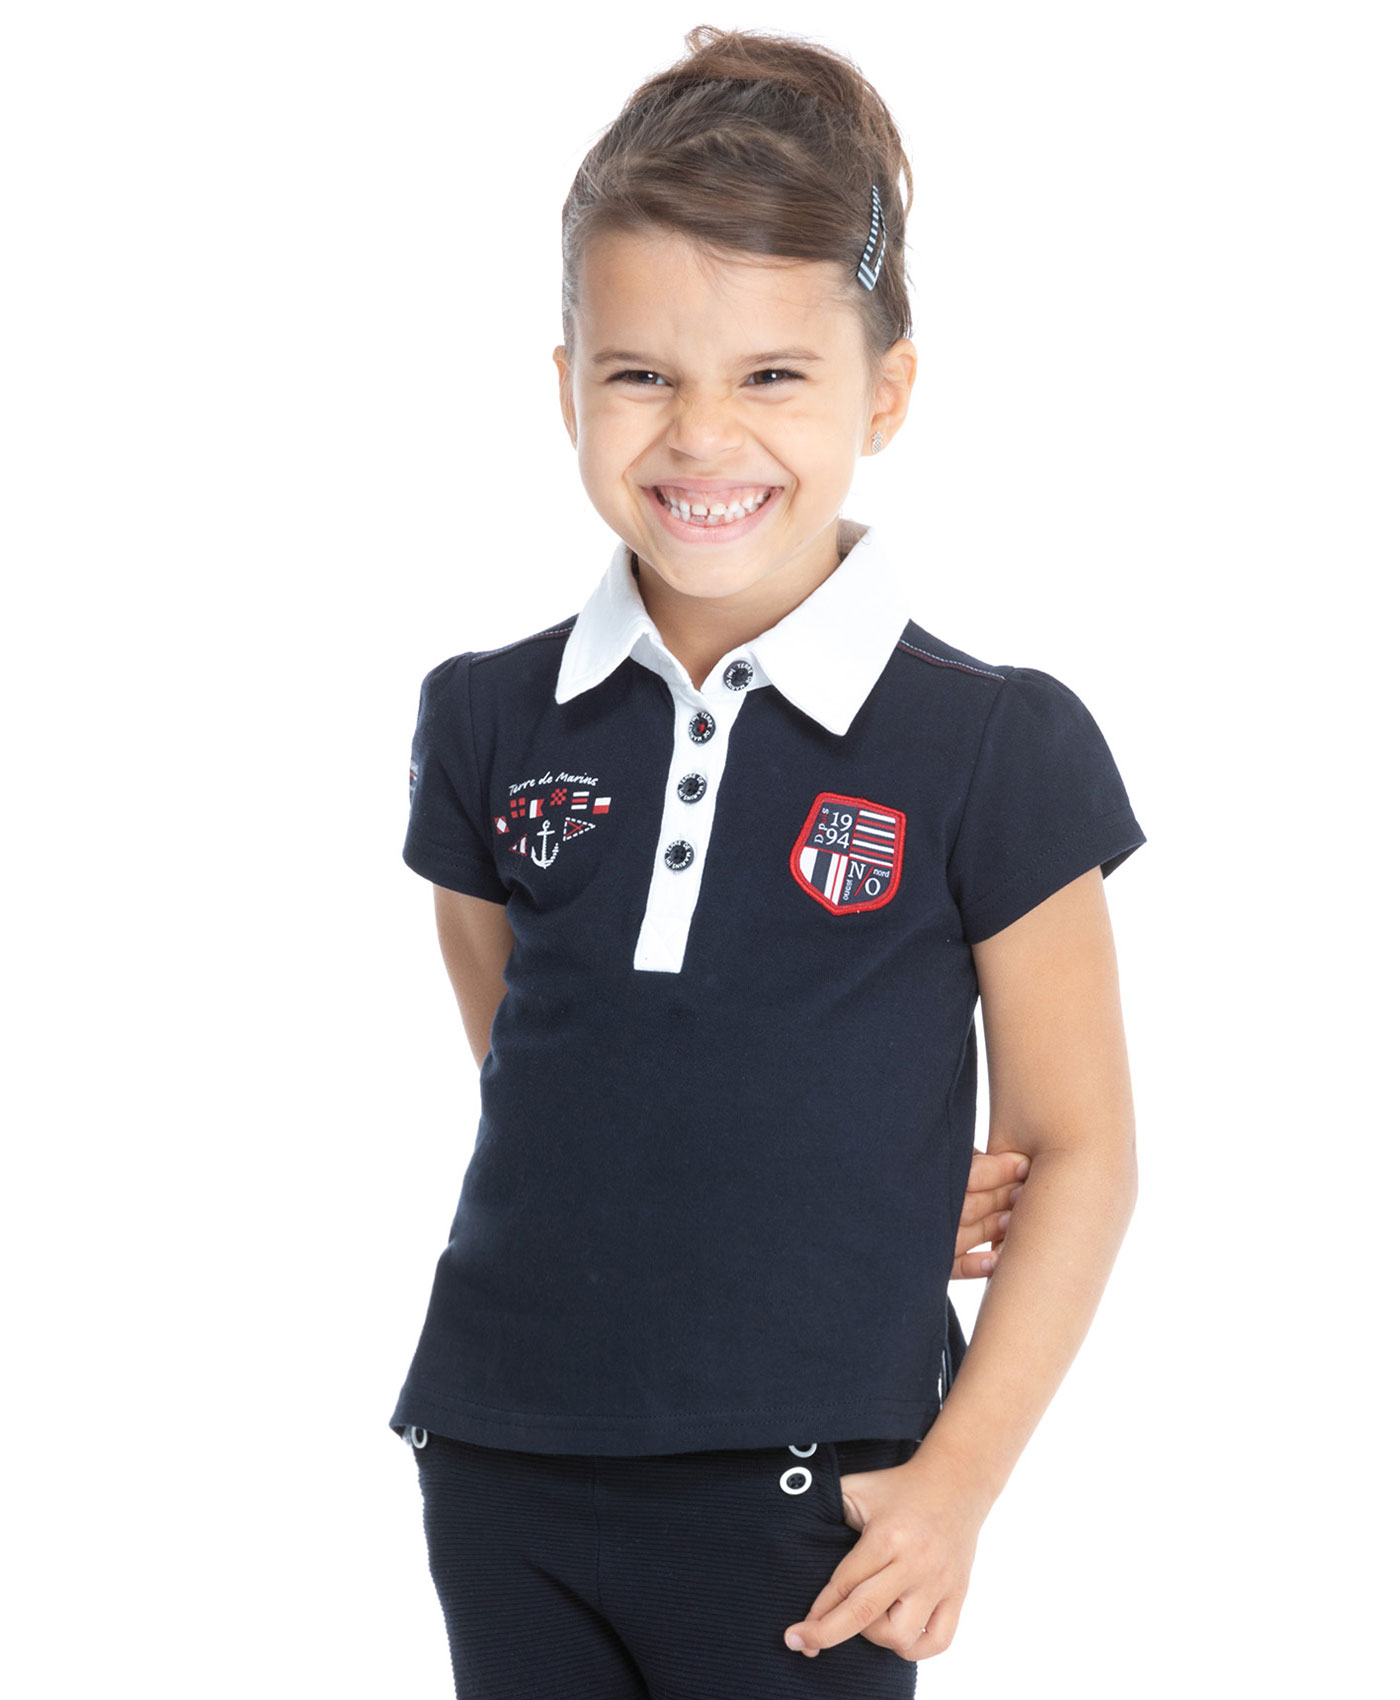 Polo de sport fille - Mode marine Enfant